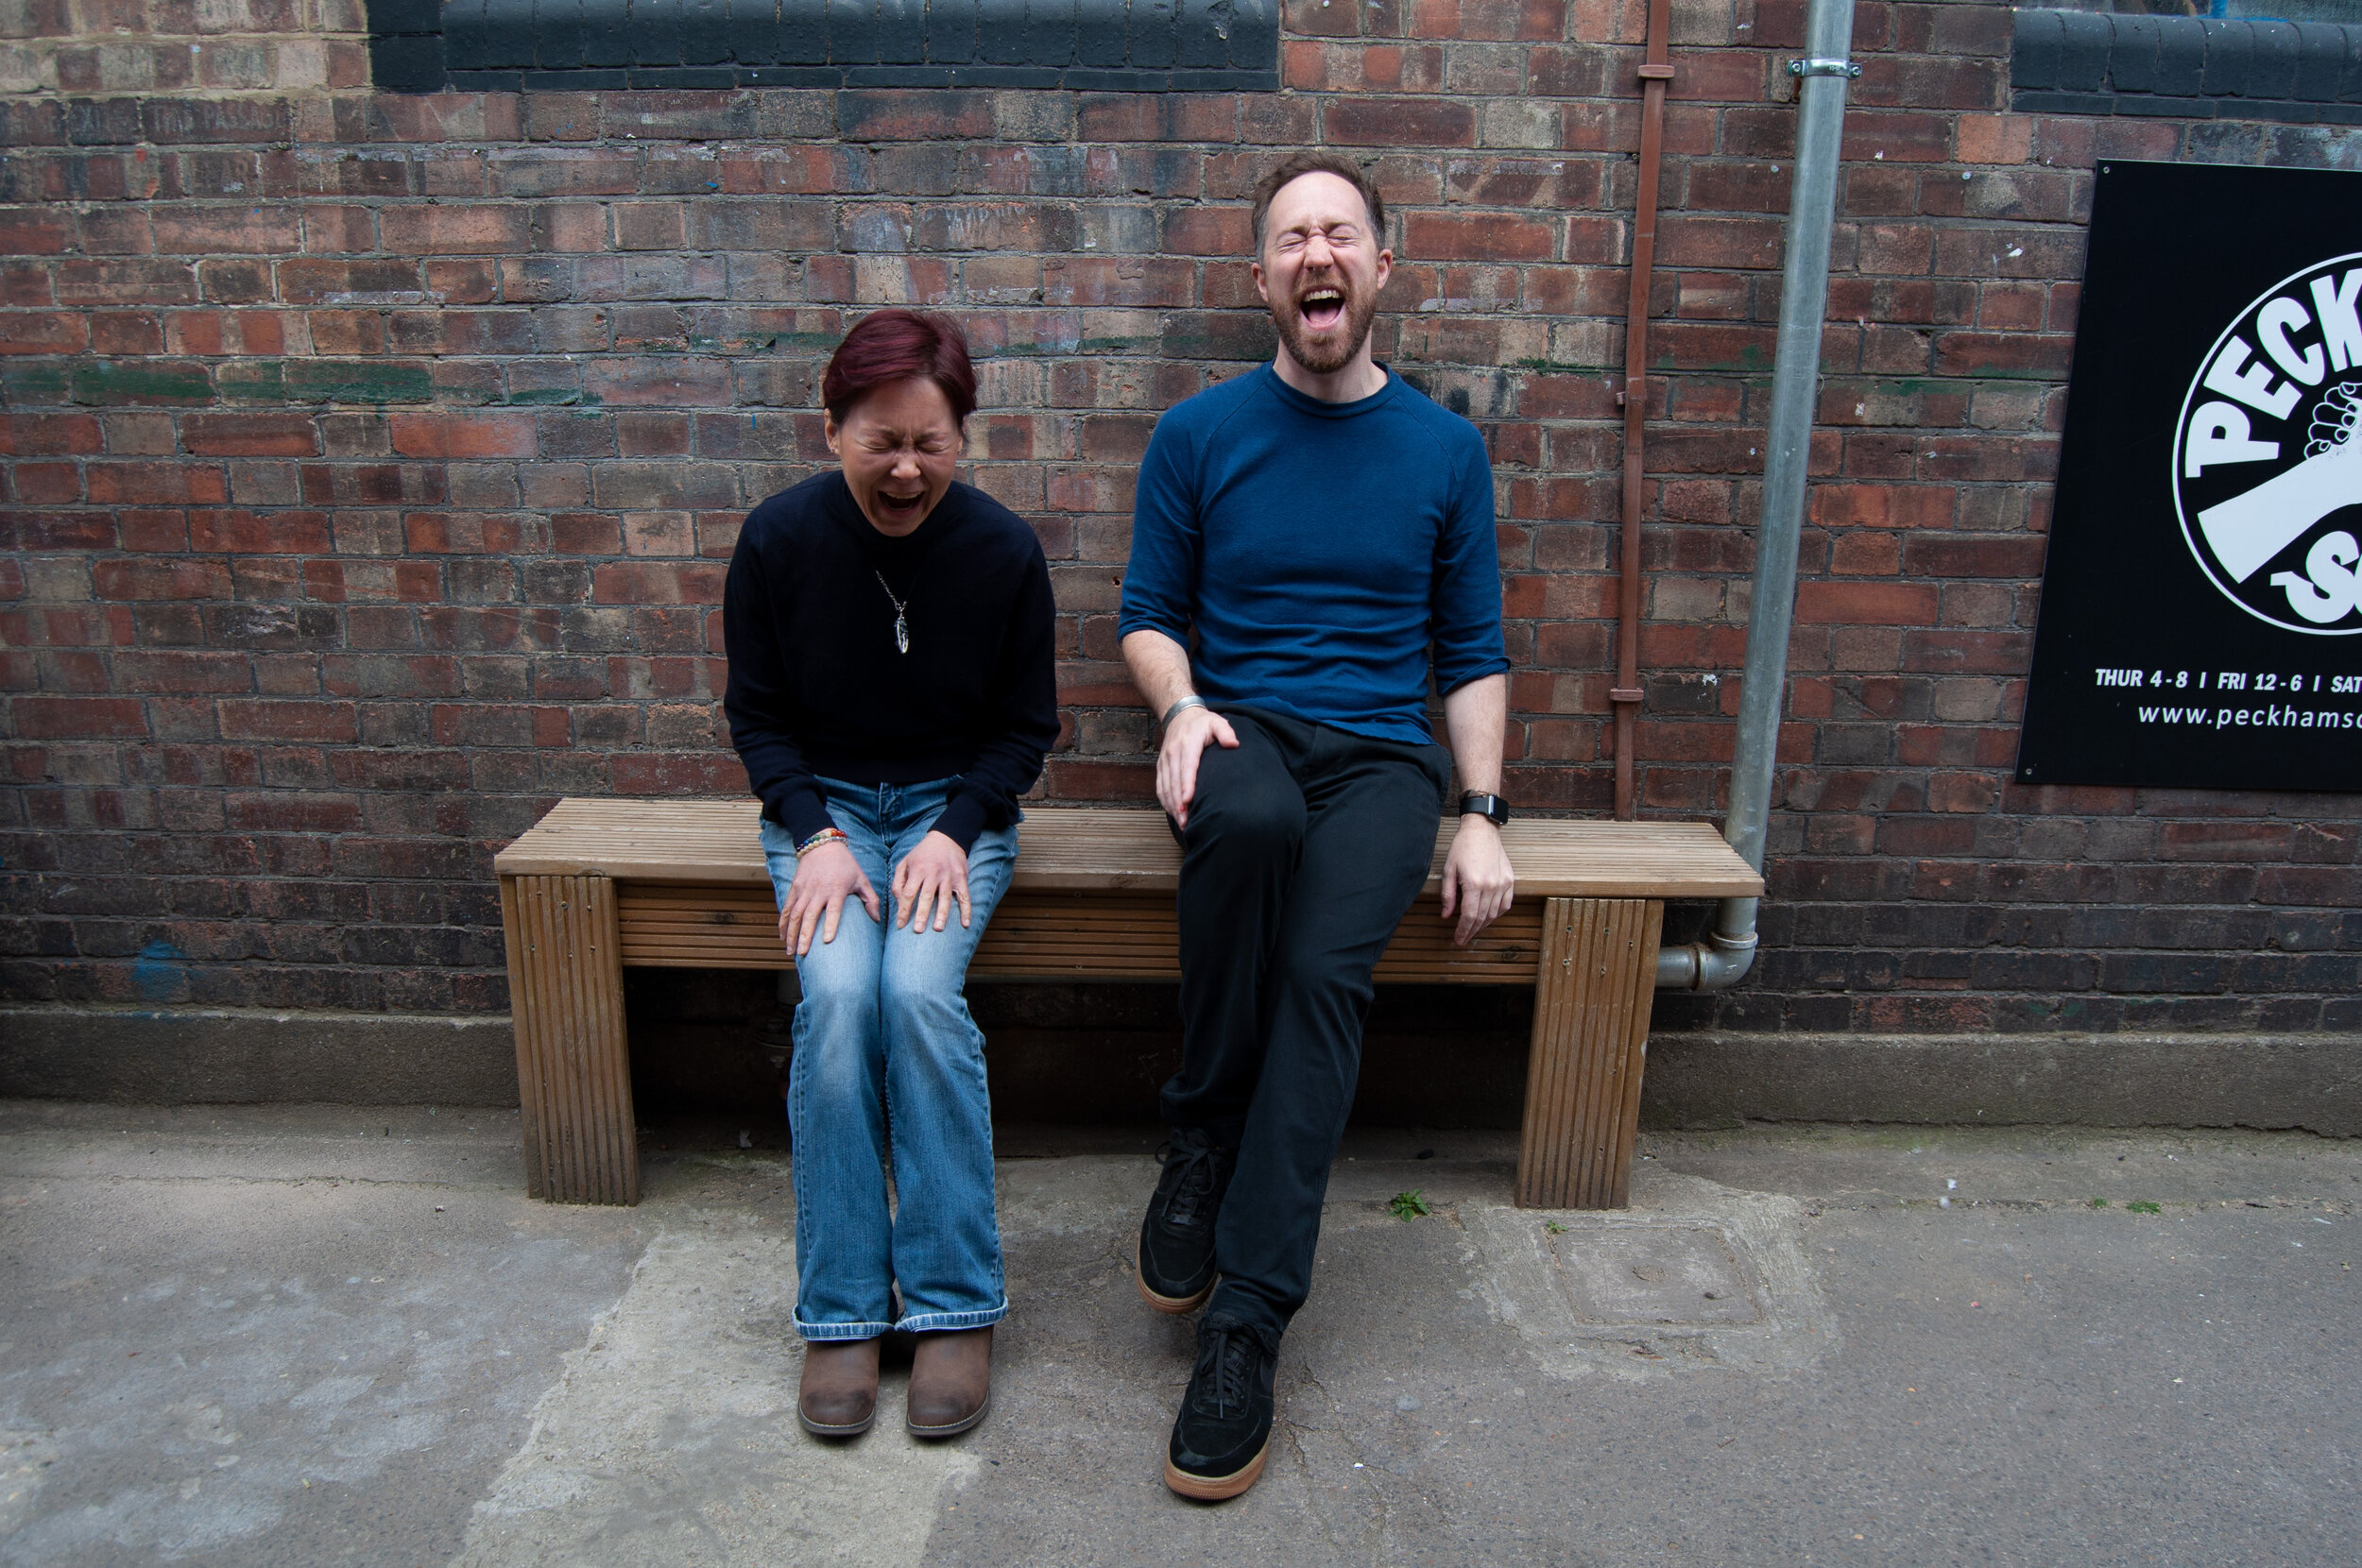 Steph Edwards (left) and Ryan Nell (right) in Peckham, June 2019